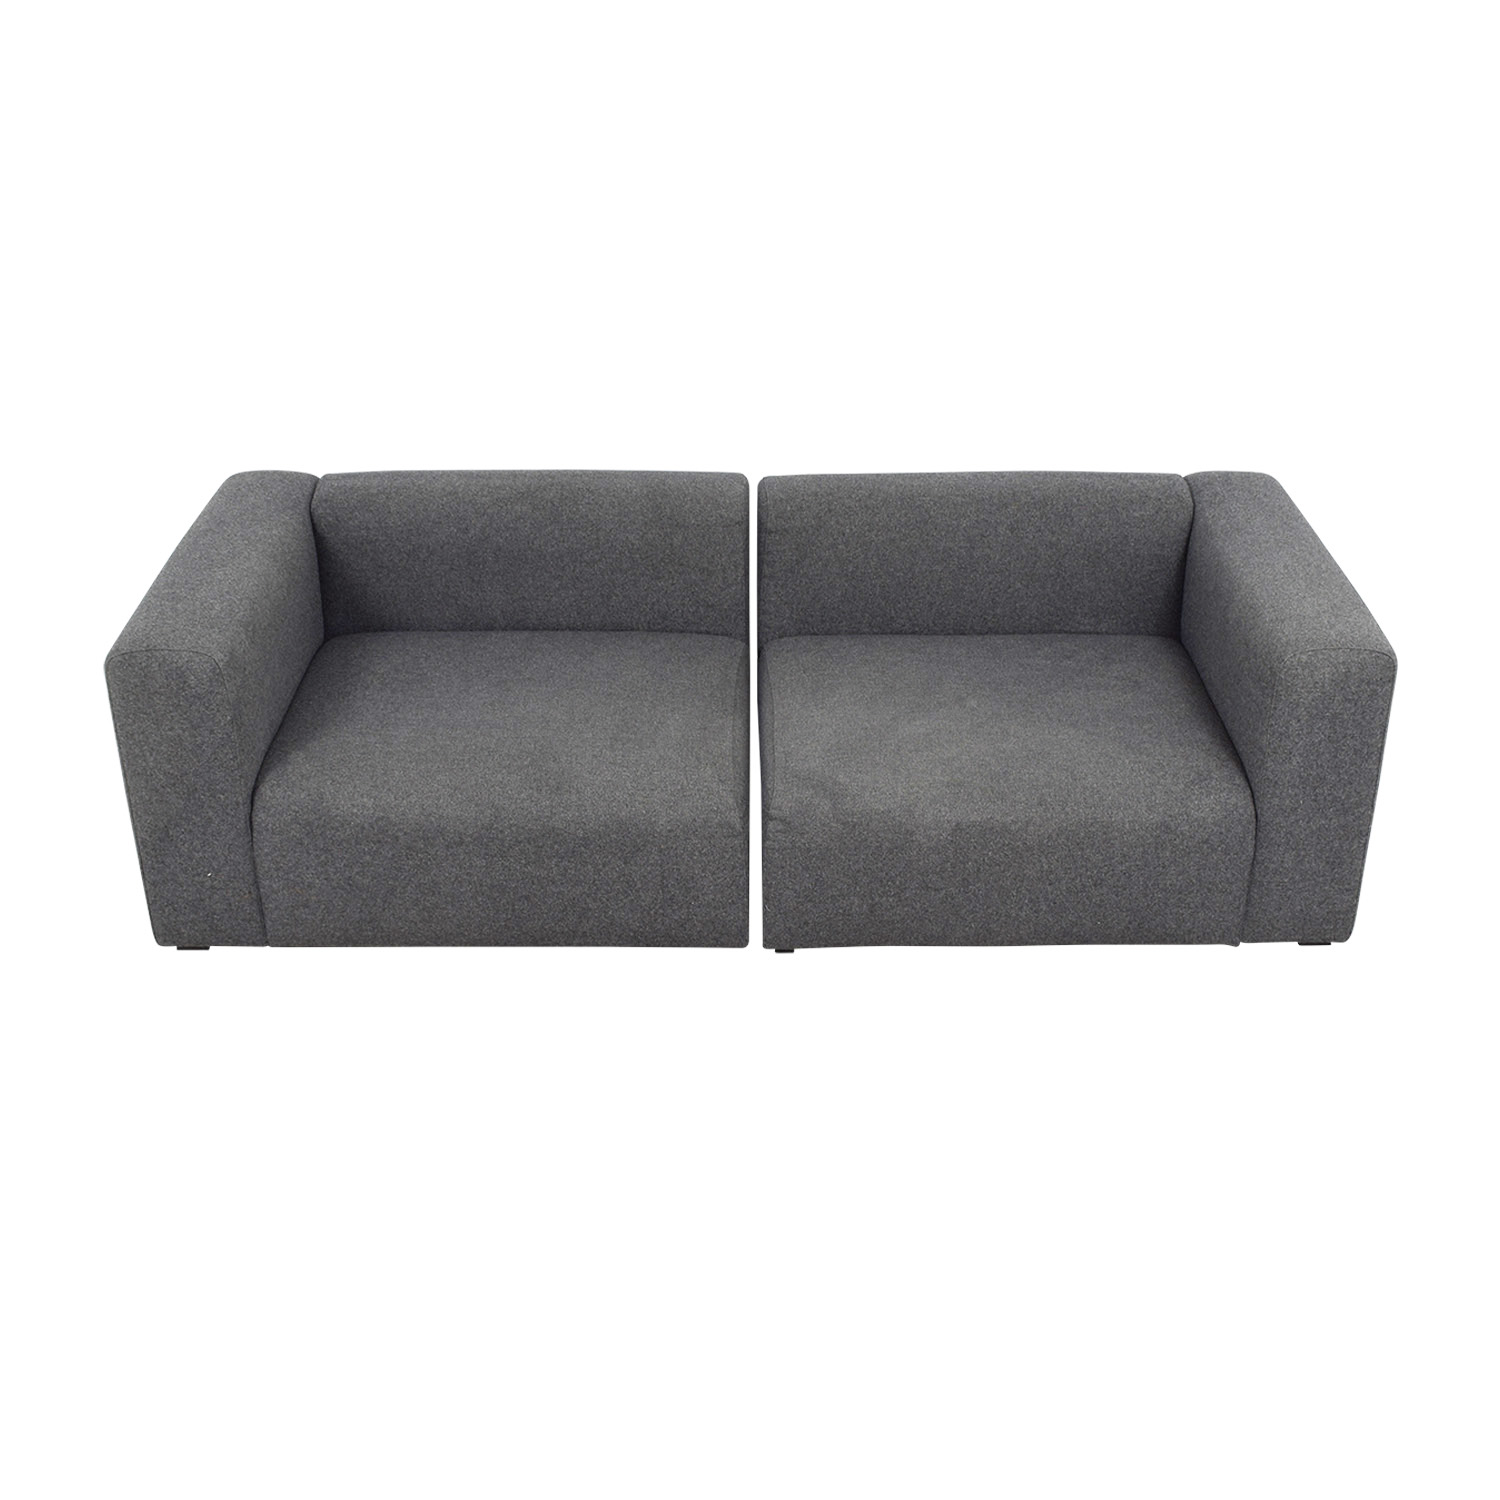 Hay Hay Mags Modular Grey Sectional on sale